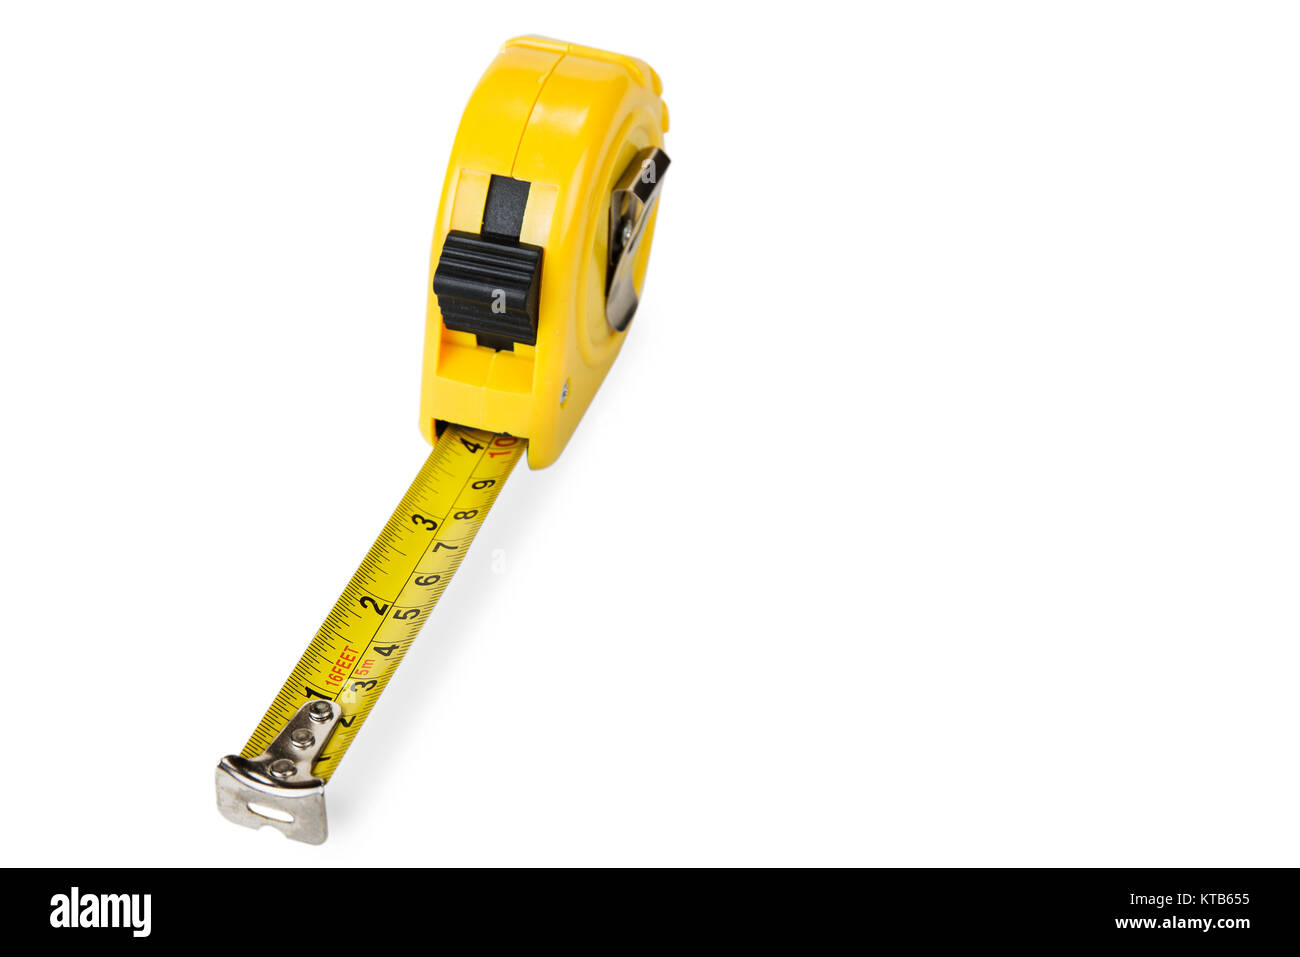 Yellow rolling meter on the white background - Stock Image